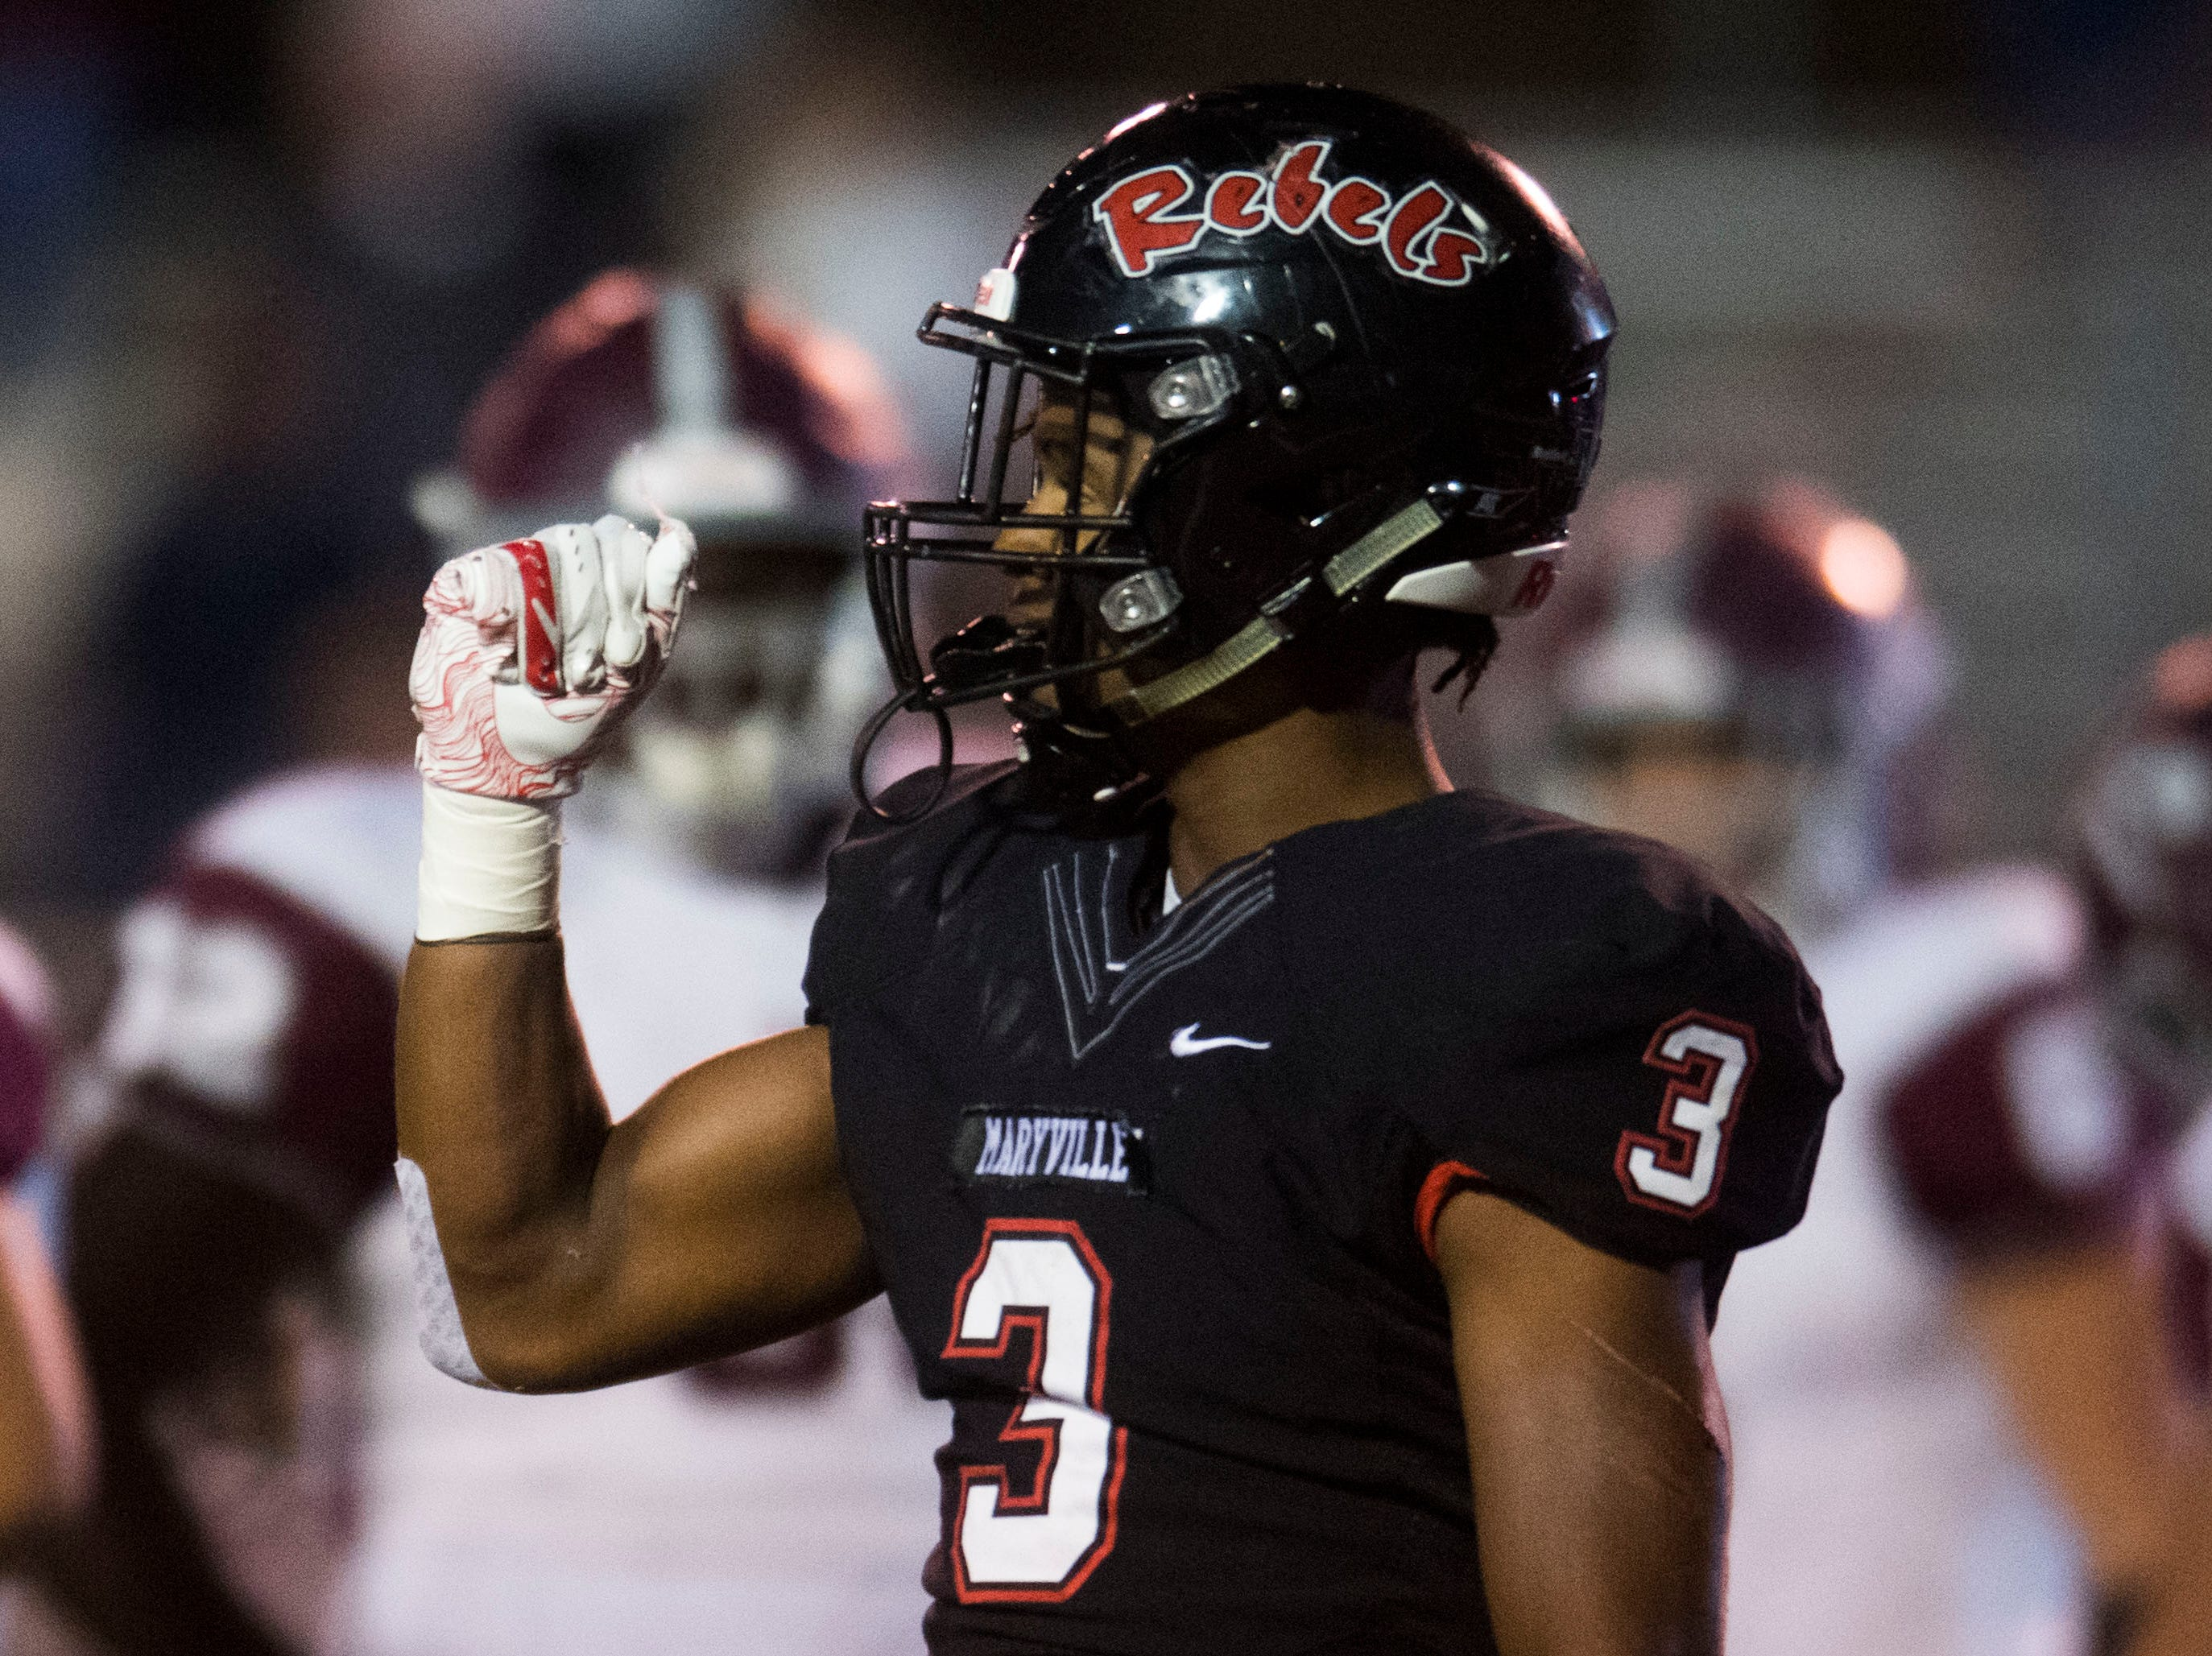 Maryville's A.J. Davis (3) celebrates stopping Bearden feet from the end zone during a first round playoff game between Maryville and Bearden at Maryville, Friday, Nov. 2, 2018. Maryville defeated Bearden 28-7.